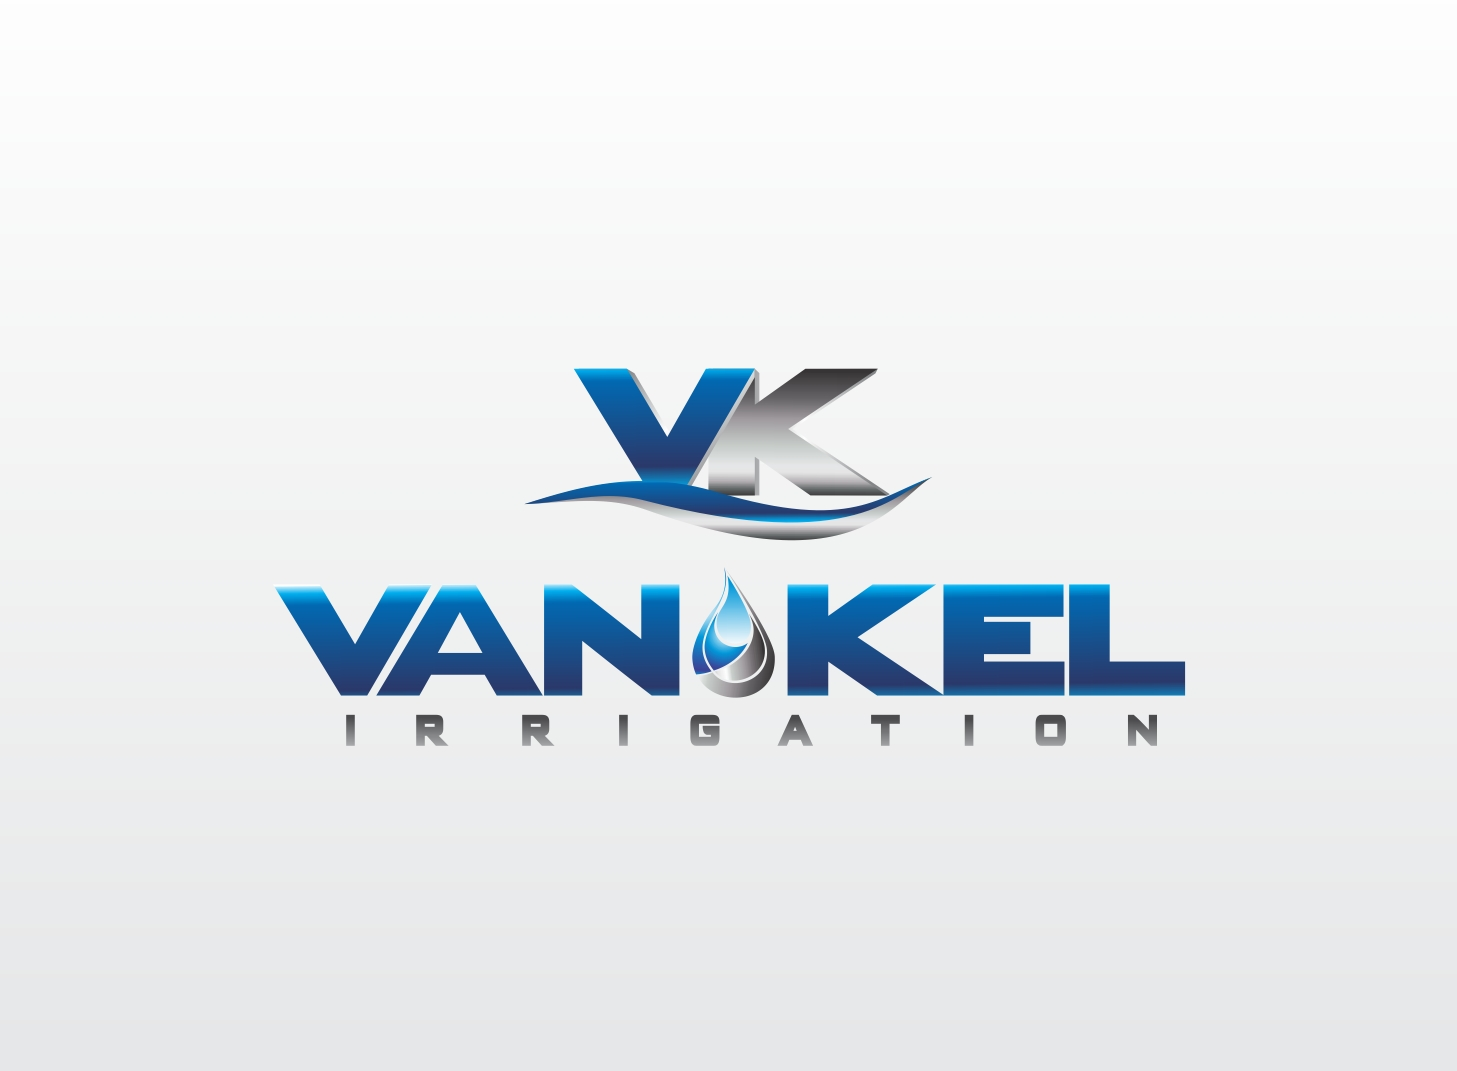 Logo Design by Zdravko Krulj - Entry No. 236 in the Logo Design Contest Van-Kel Irrigation Logo Design.